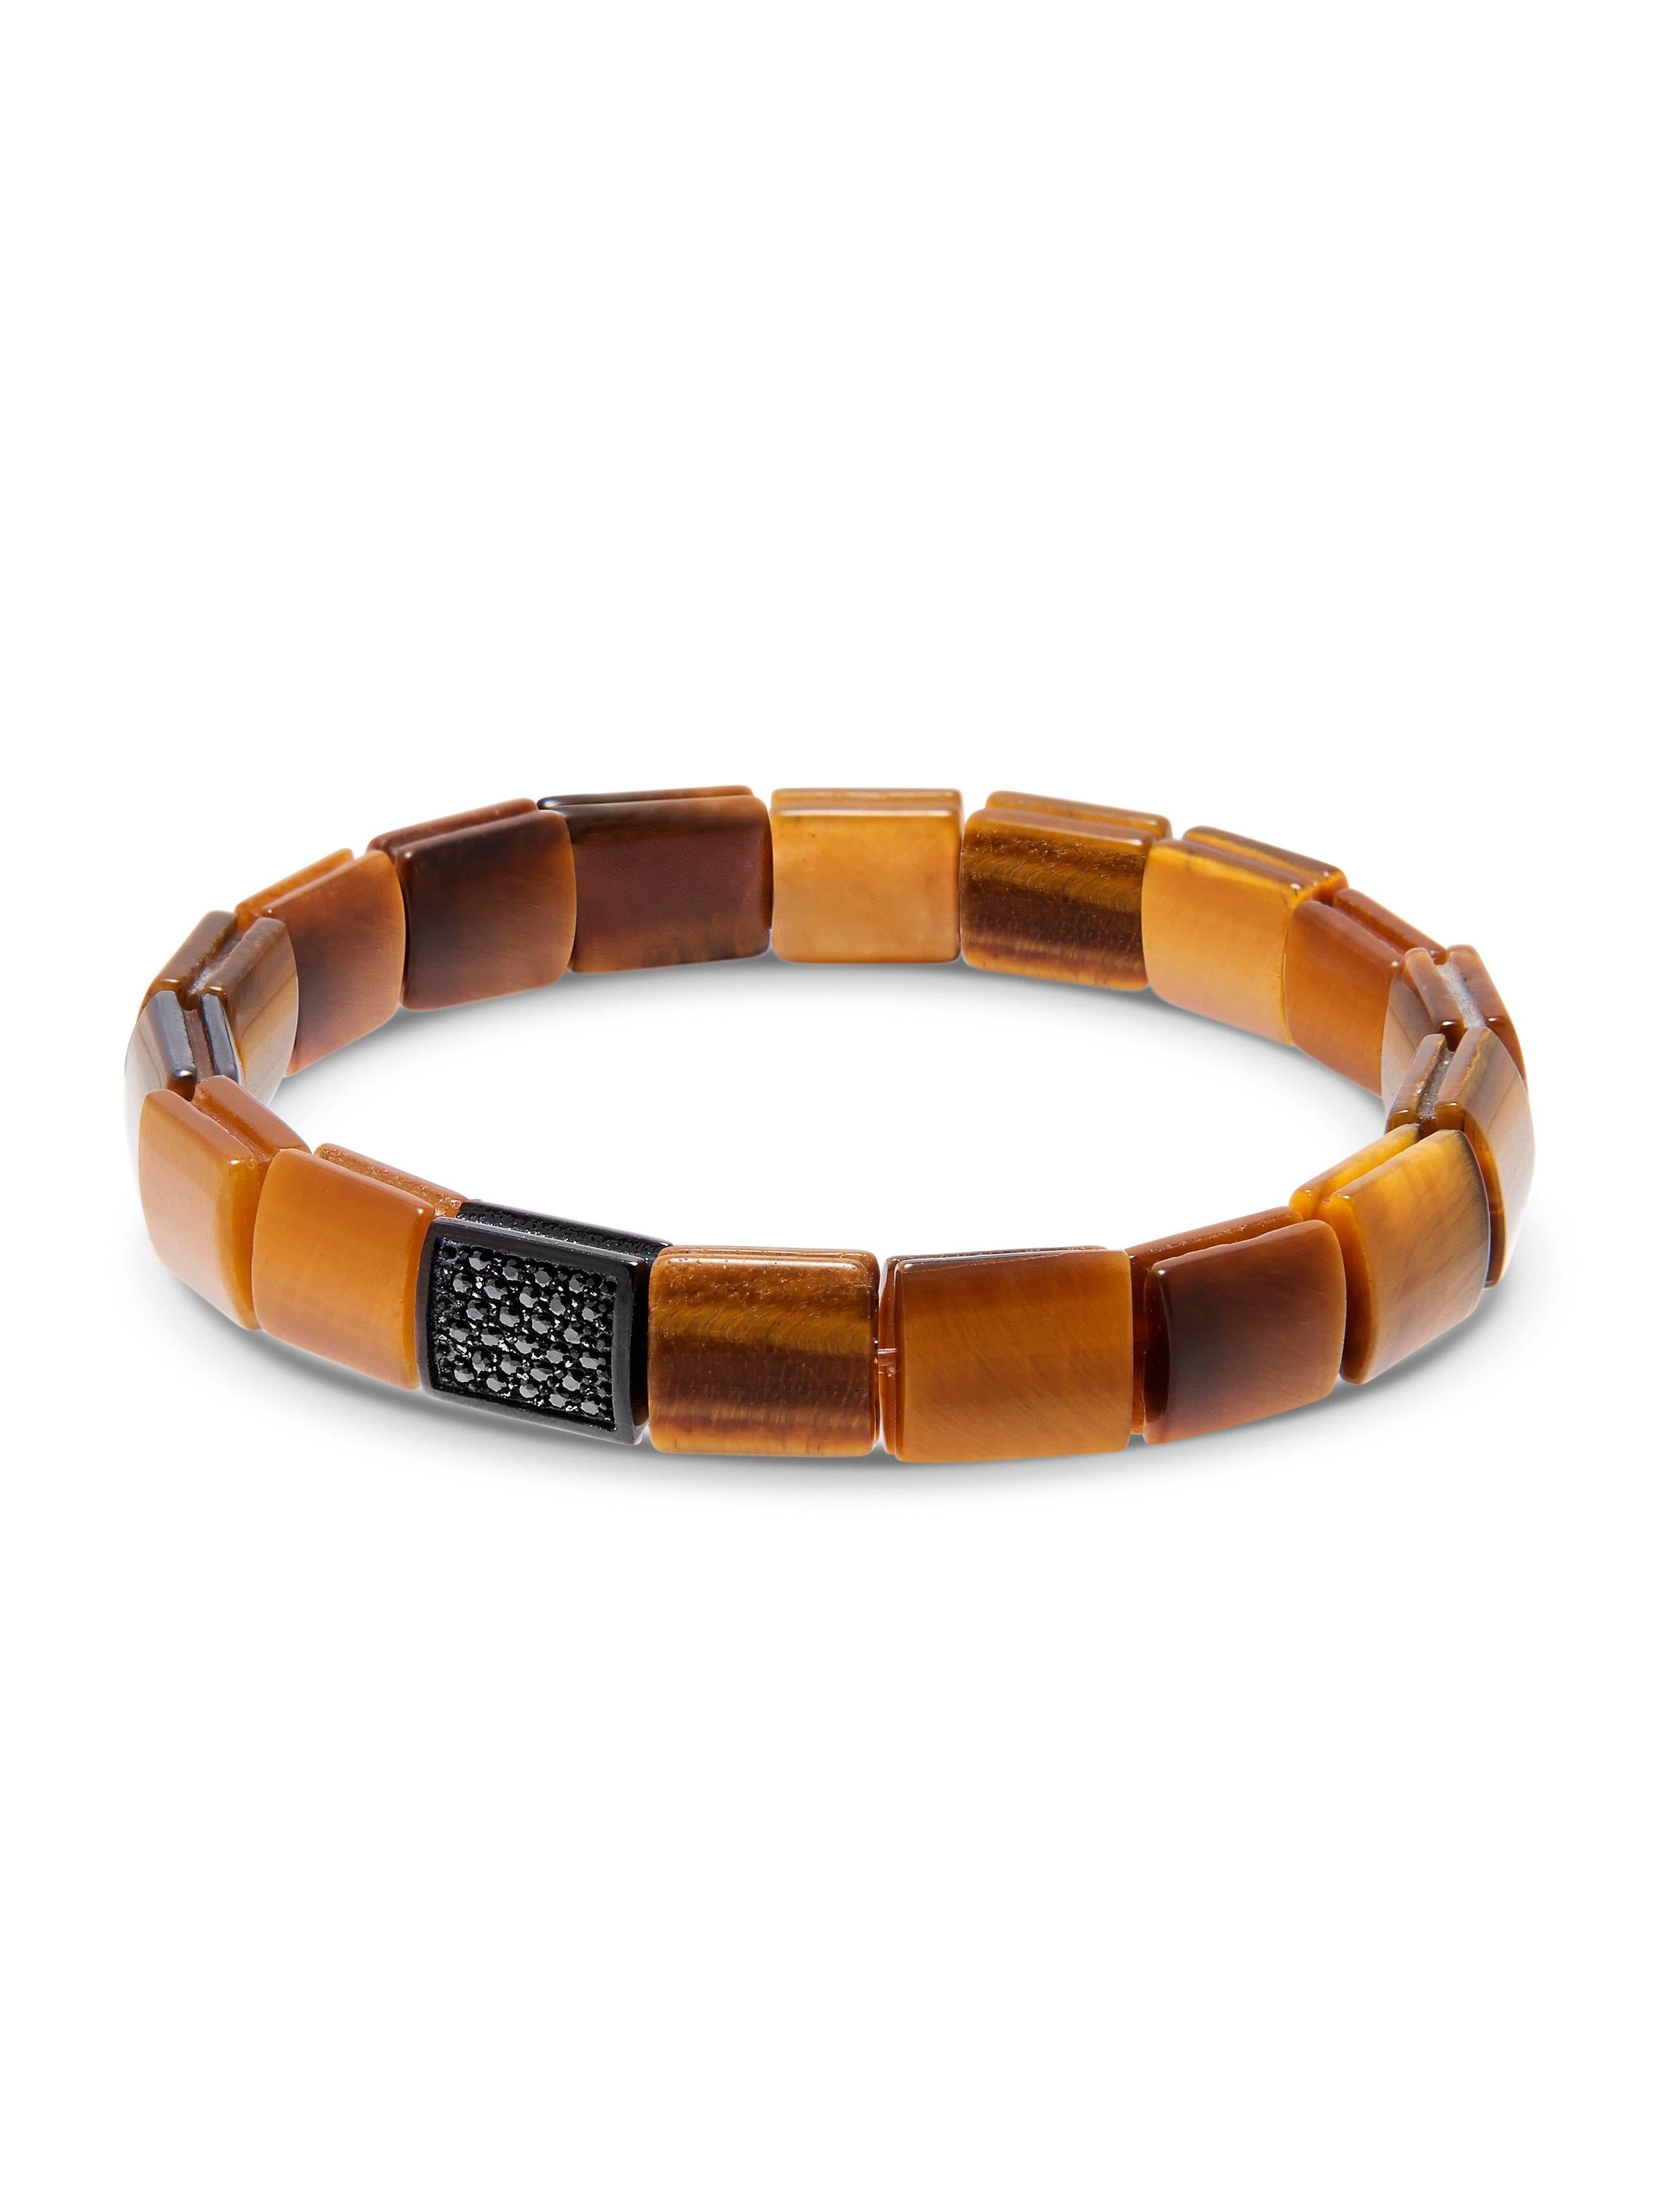 Men's Wristband with Brown Tiger Eye and Black CZ Diamond Flatbeads